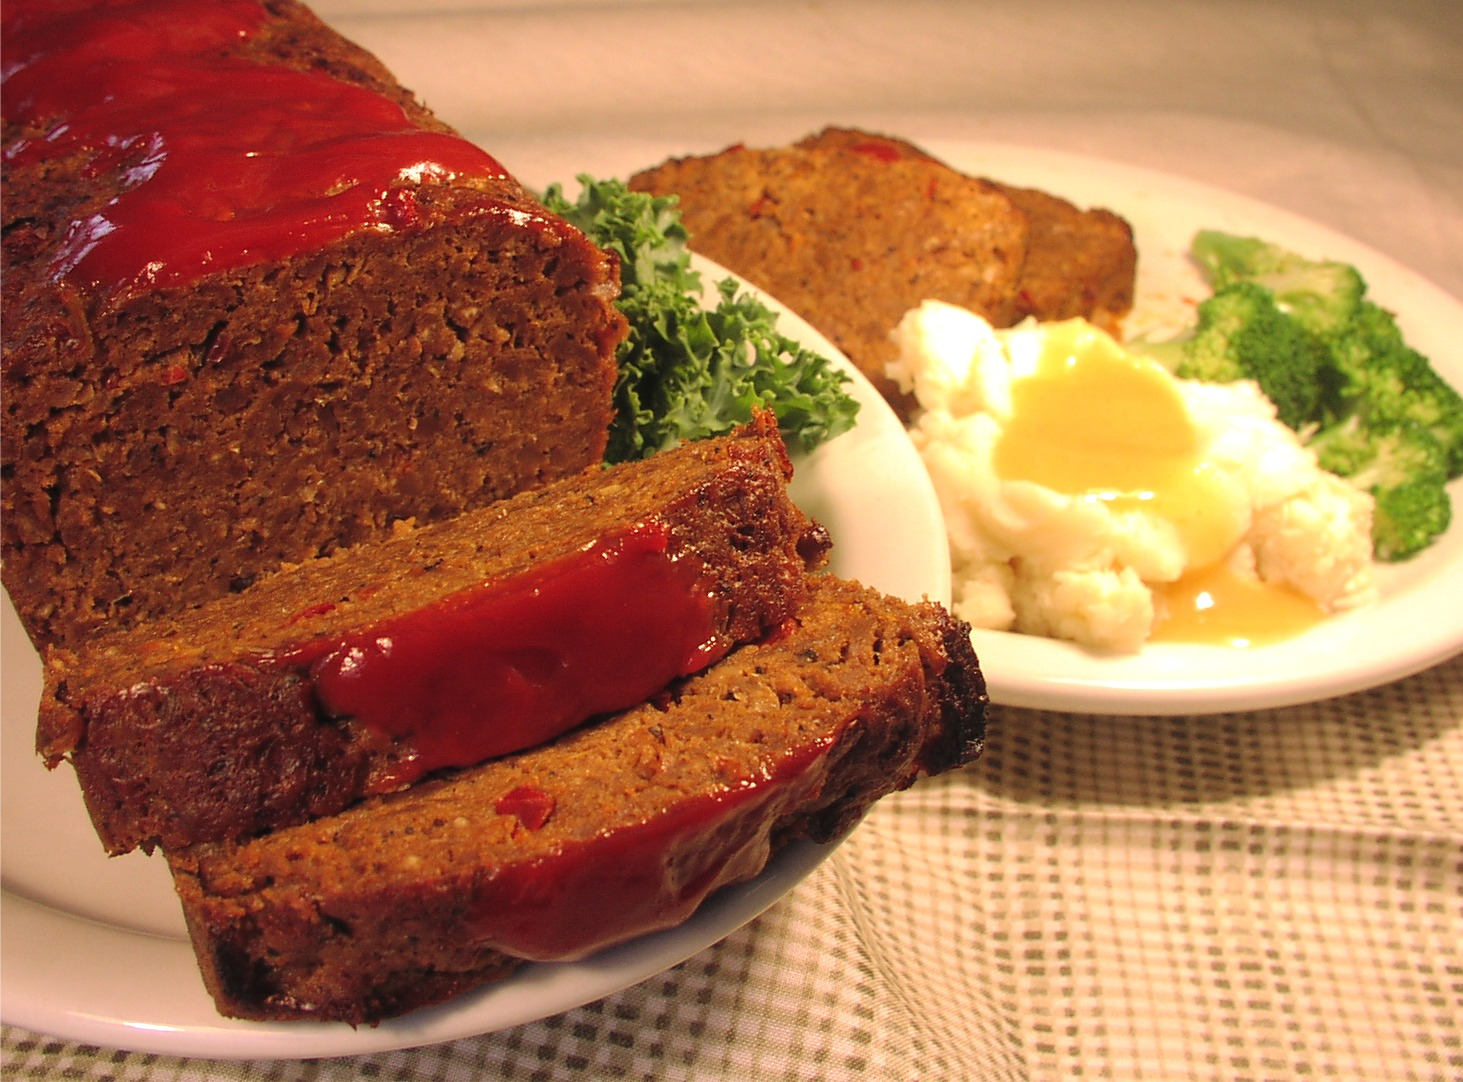 ... classic meatloaf the fatted calf s meatloaf heinz r classic meatloaf